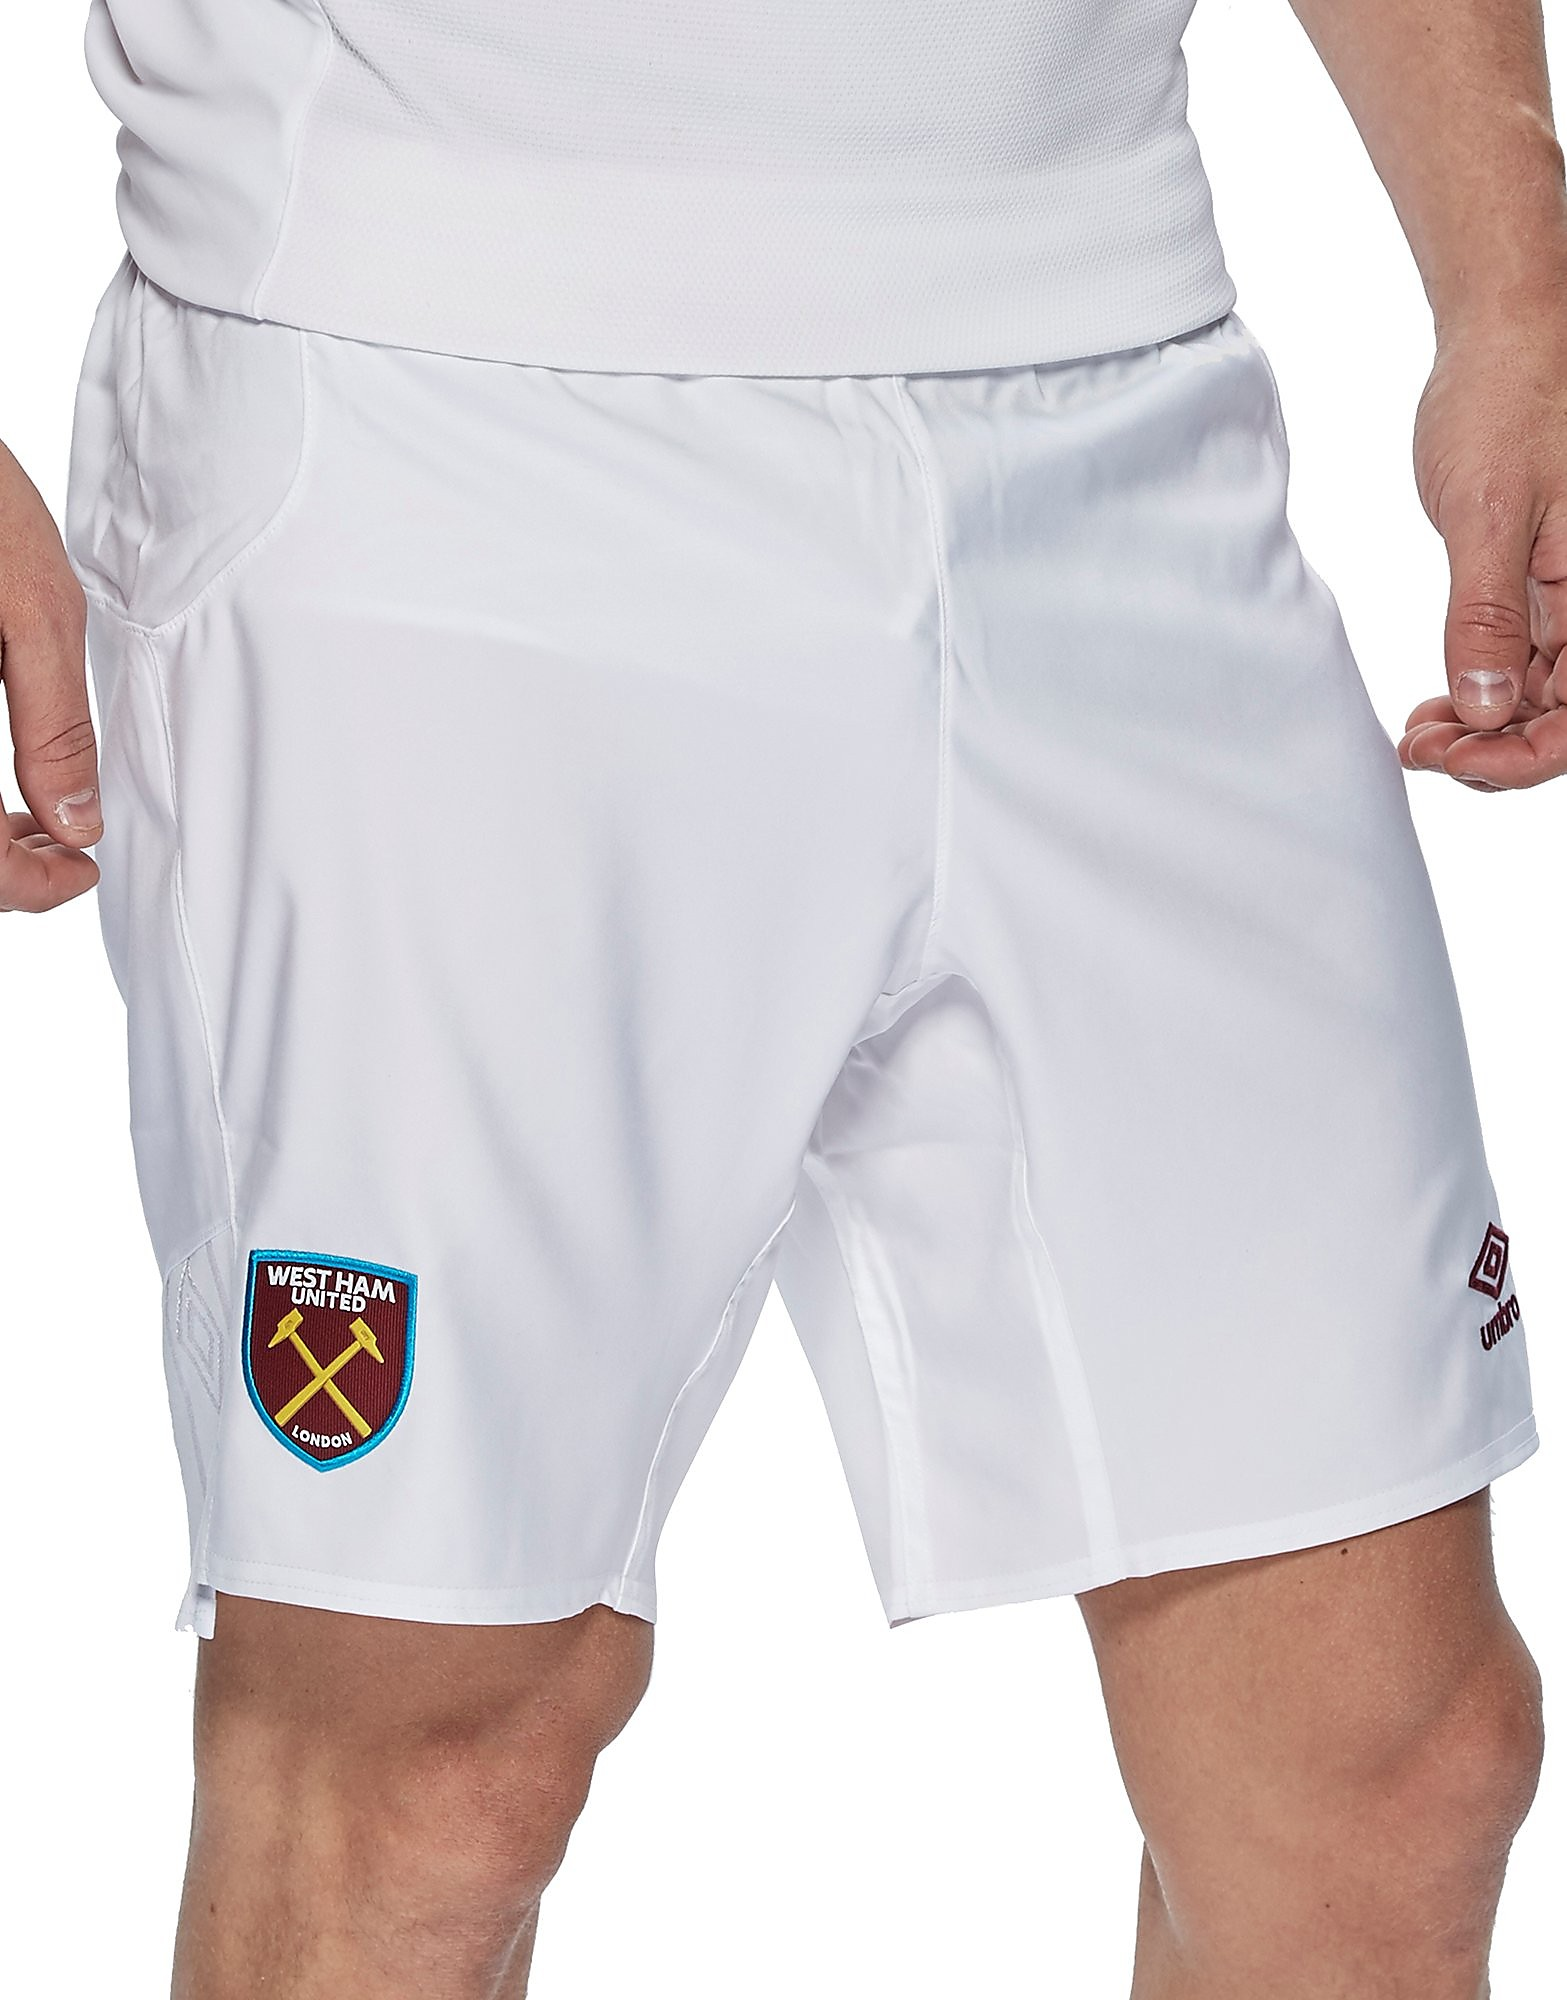 Umbro West Ham United 2017/18 Home Shorts PRE ORDER